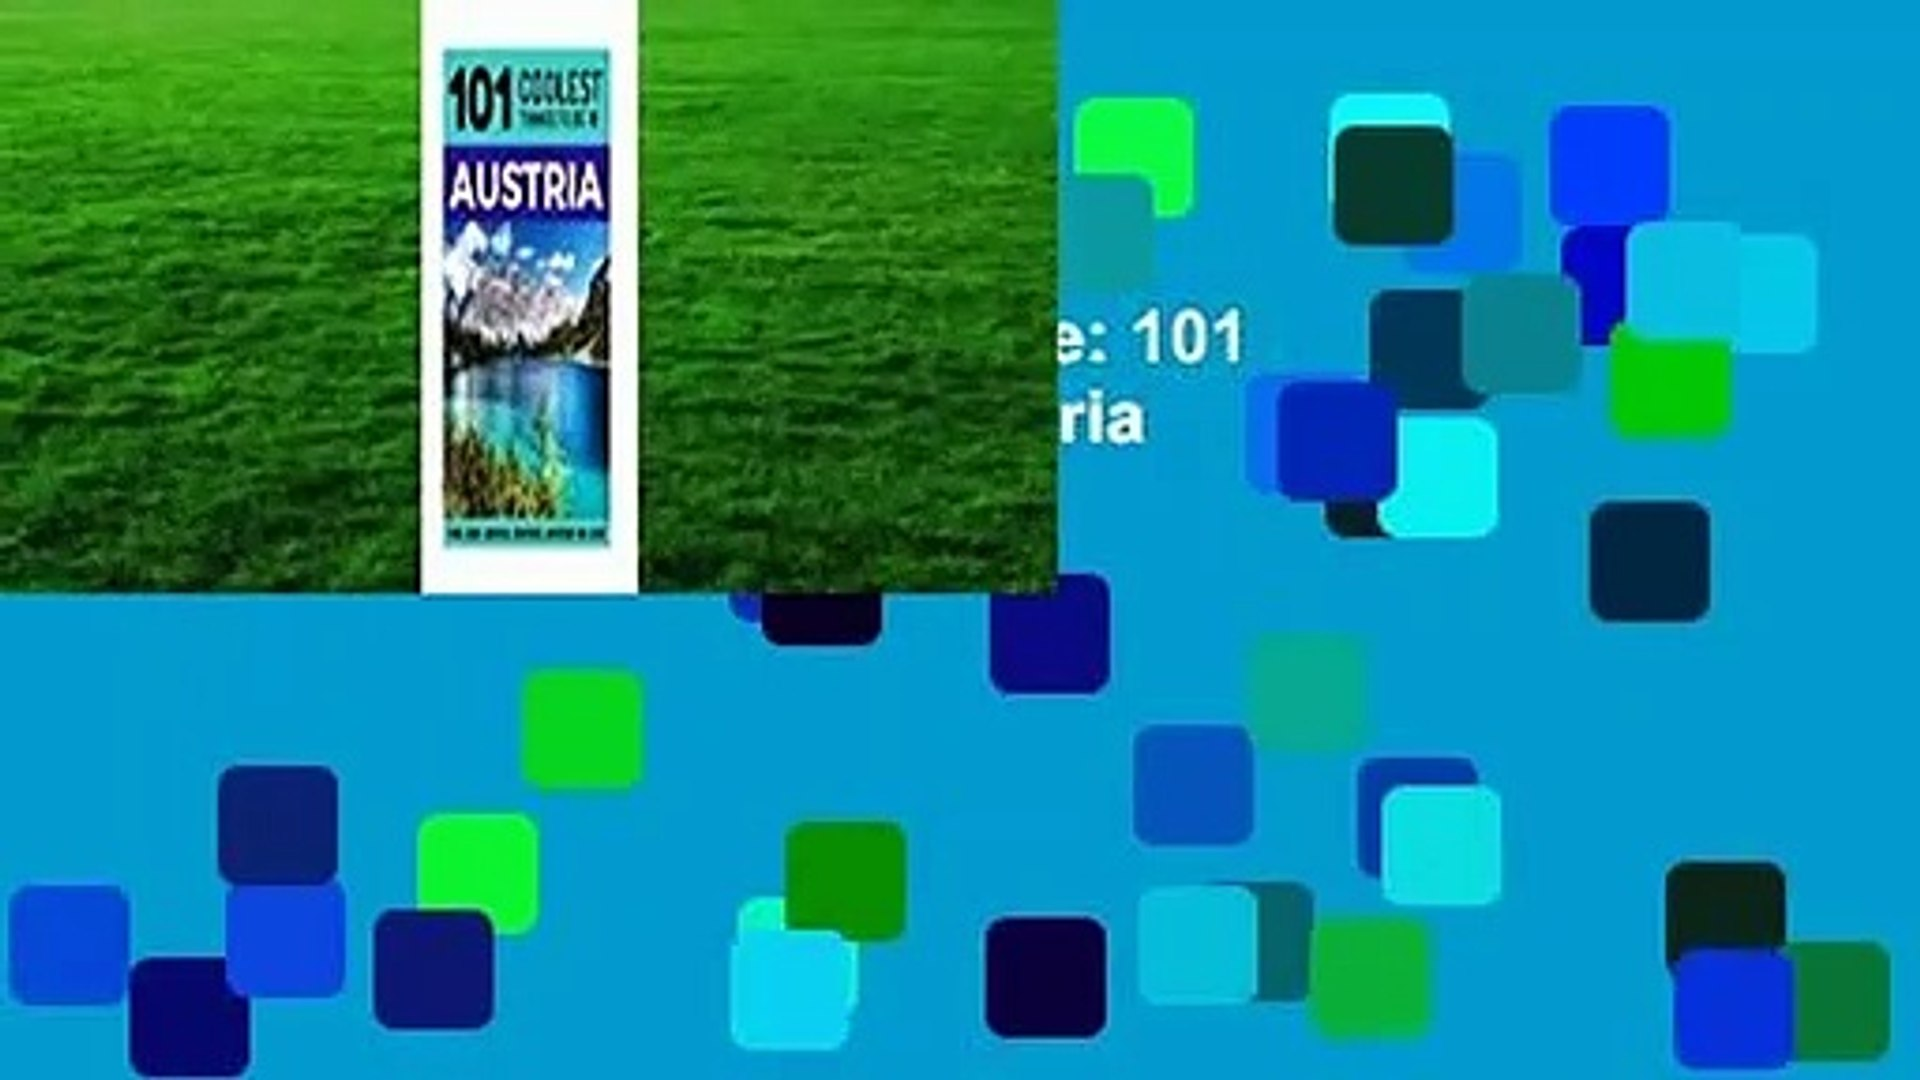 Austria: Austria Travel Guide: 101 Coolest Things to Do in Austria  Review